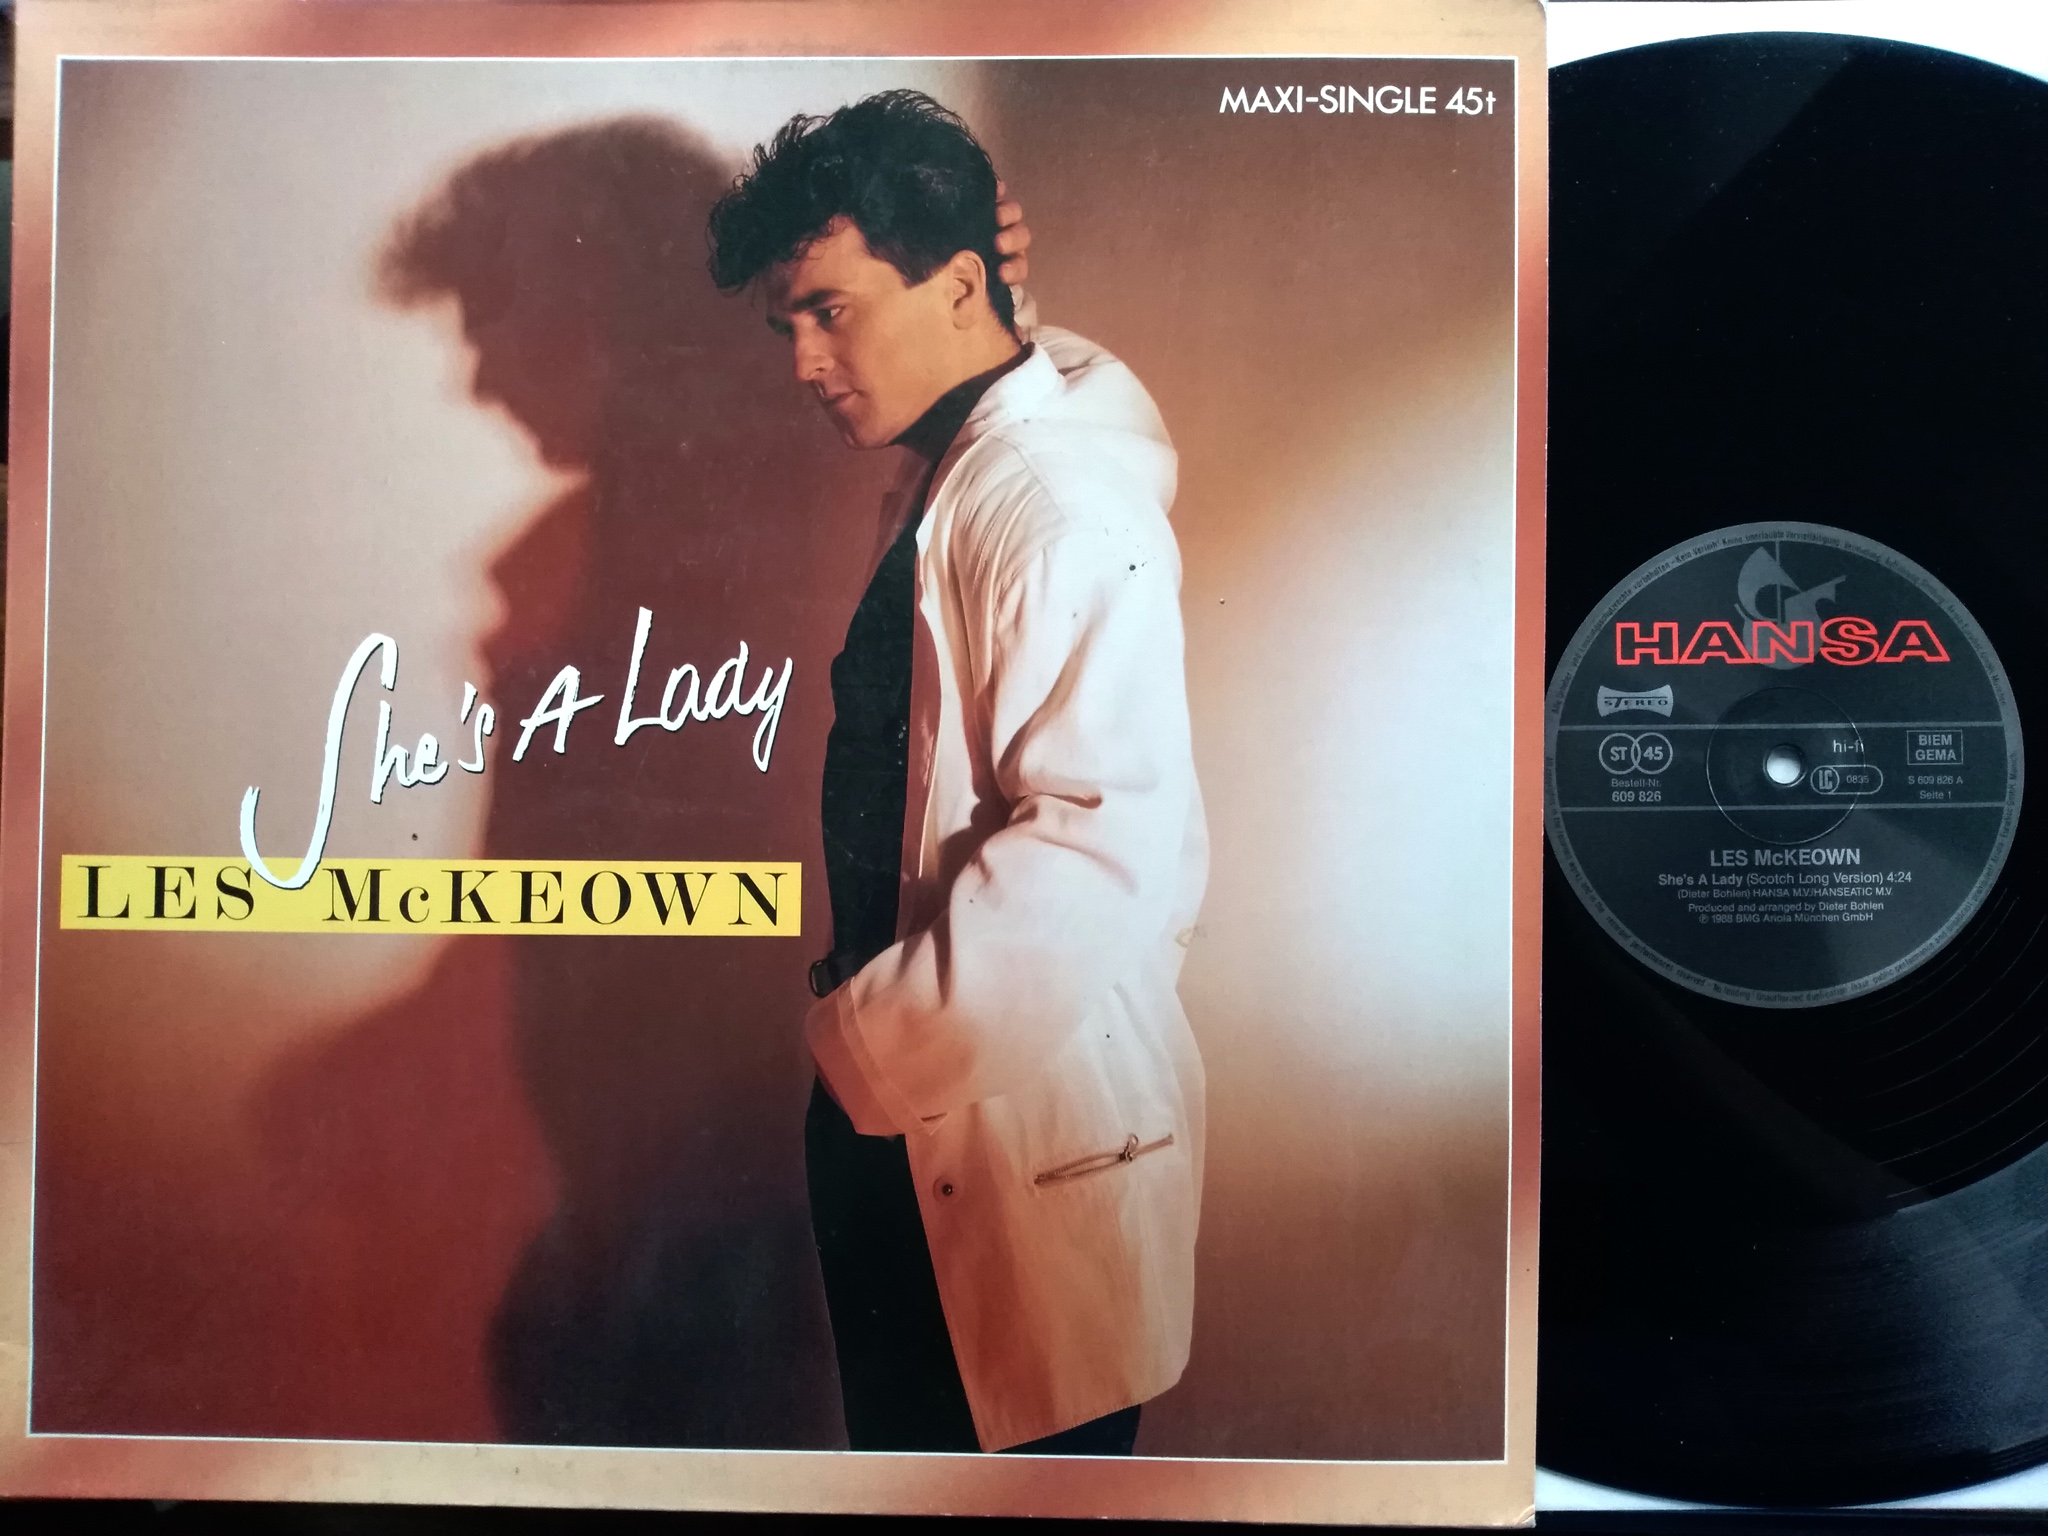 Les McKeown - She's A Lady